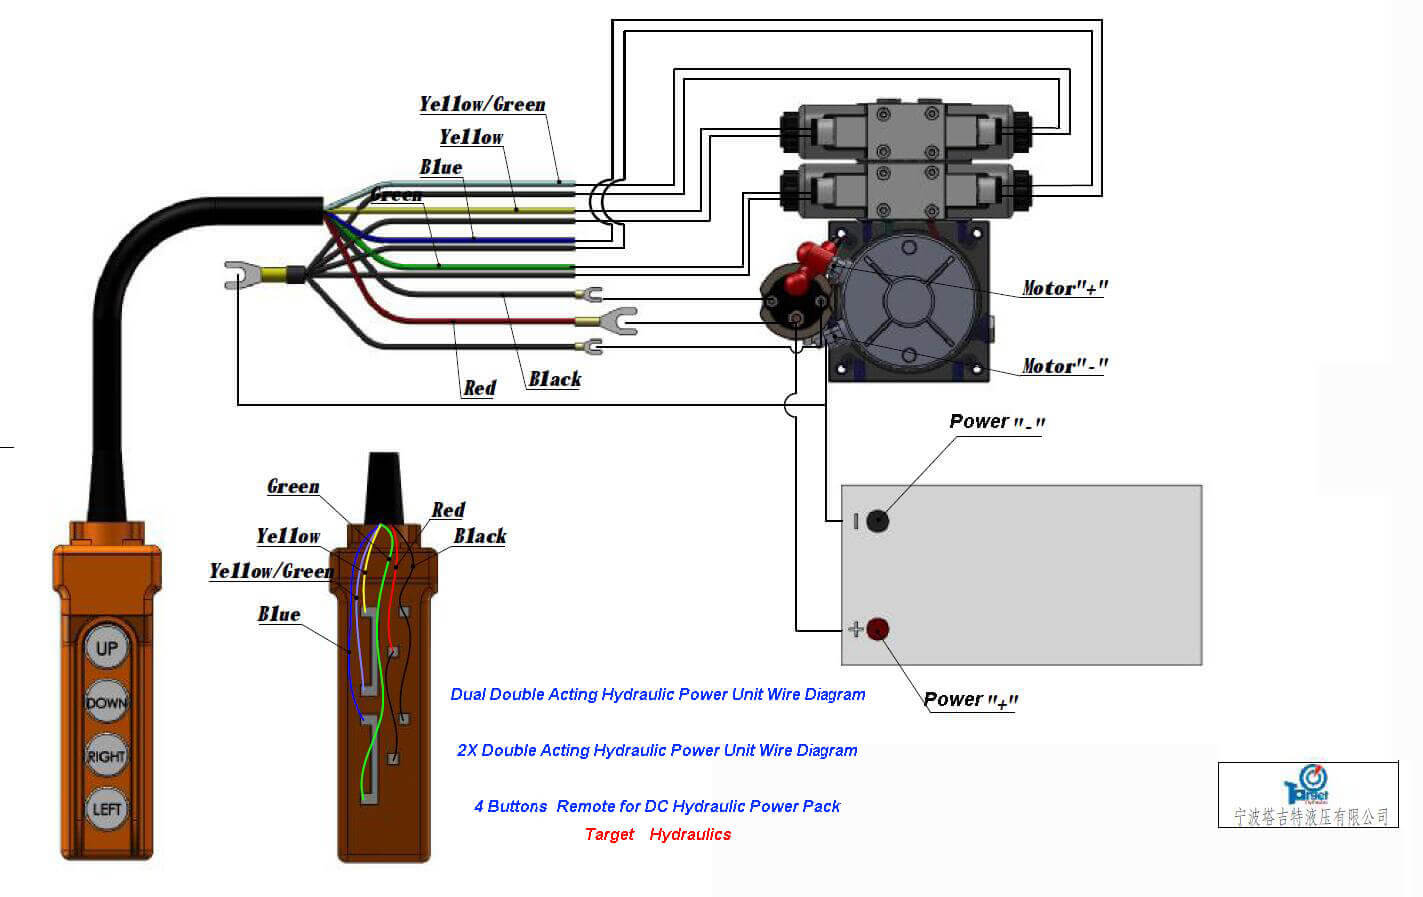 hight resolution of how to wire hydraulic power pack power unit diagram design rh target hydraulics com hydraulic pump circuit diagram mac valve wiring diagram